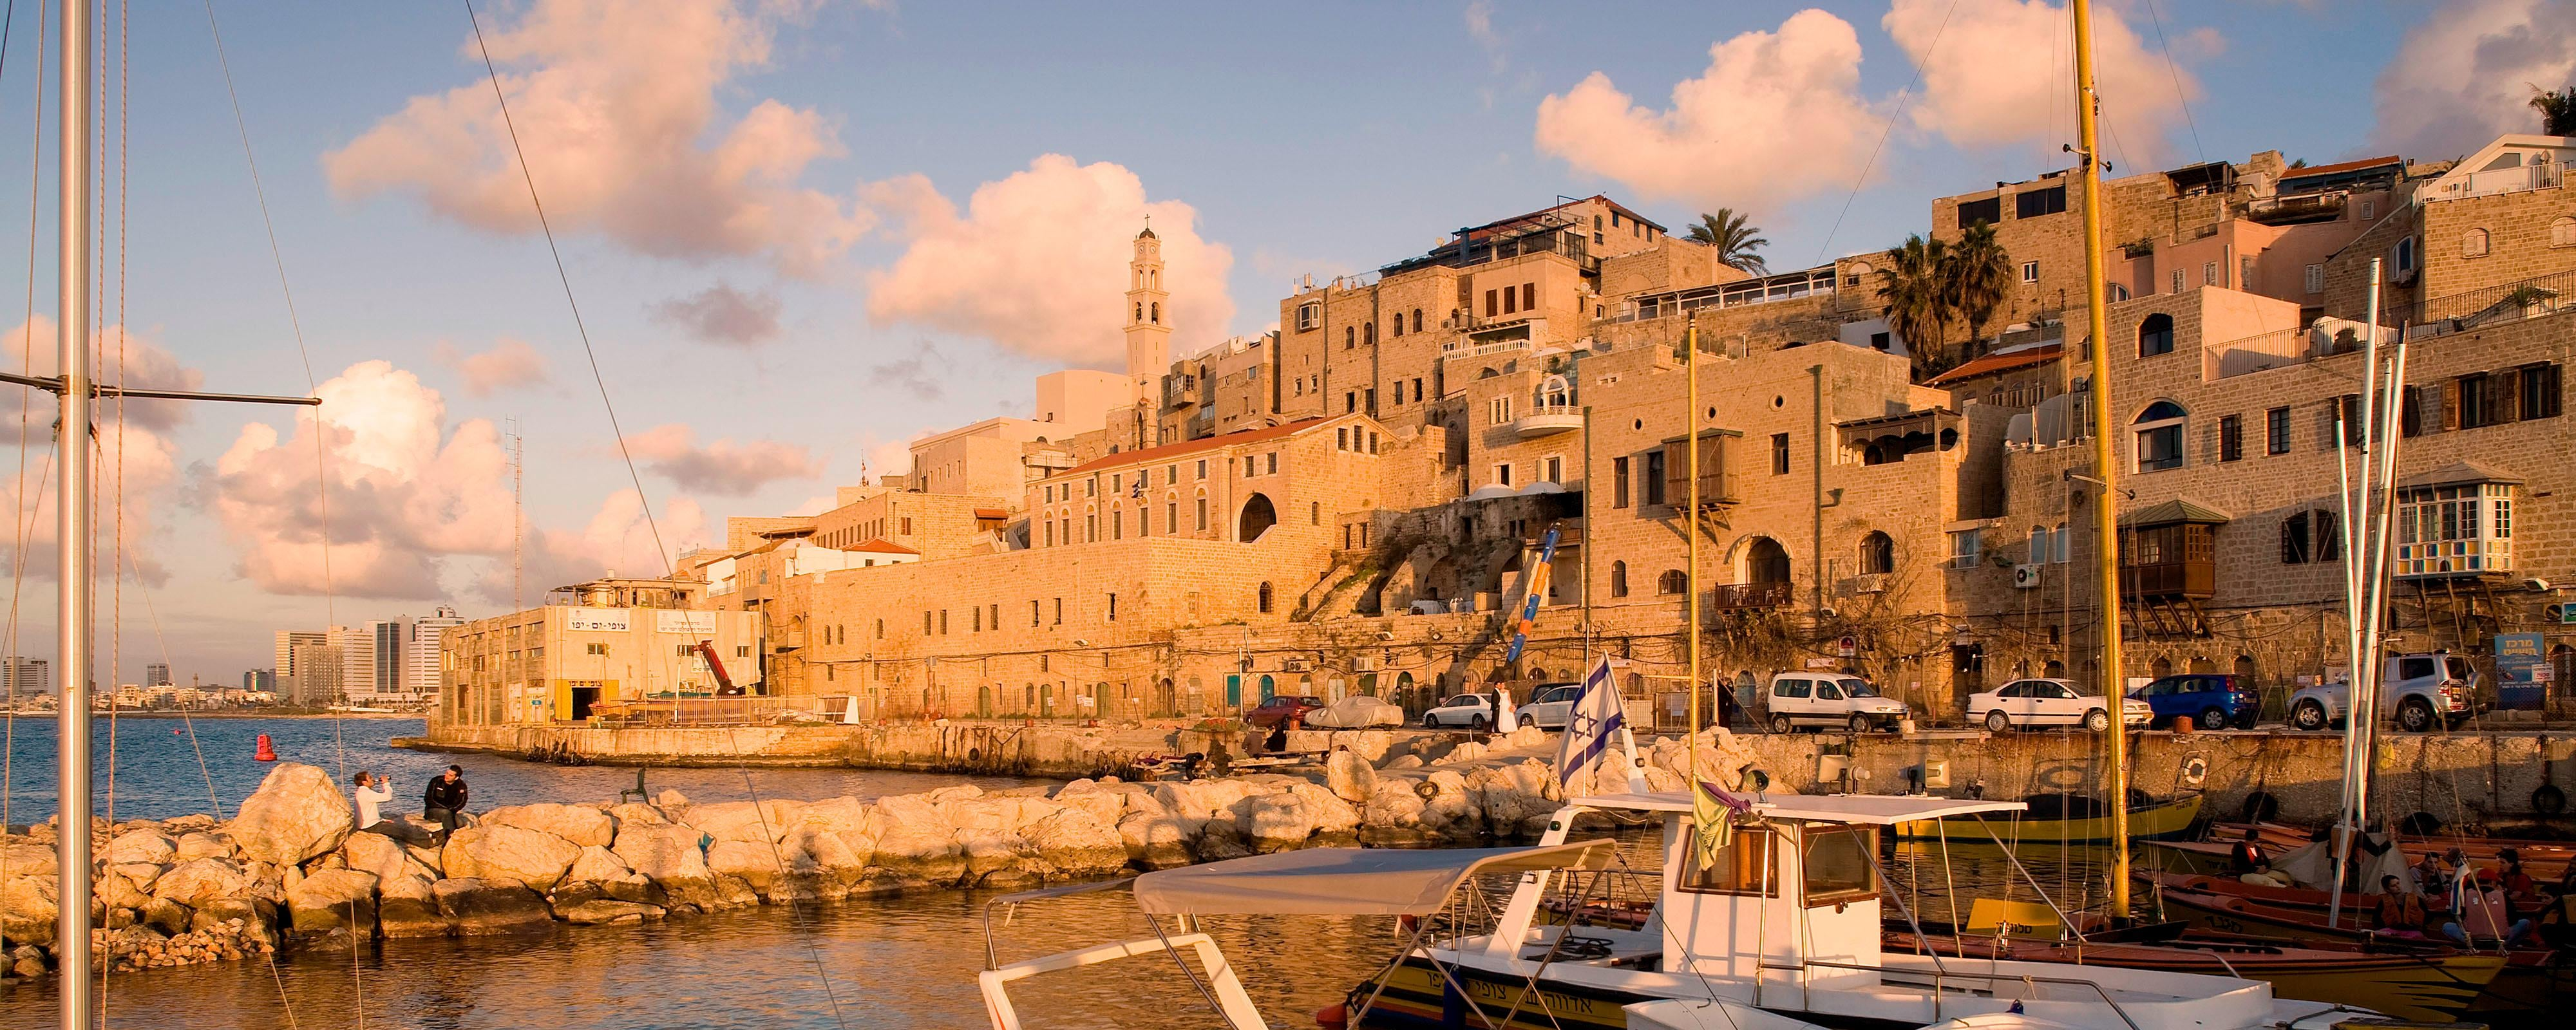 Luxury Hotels Amp Resorts In Tel Aviv Jaffa The Jaffa A